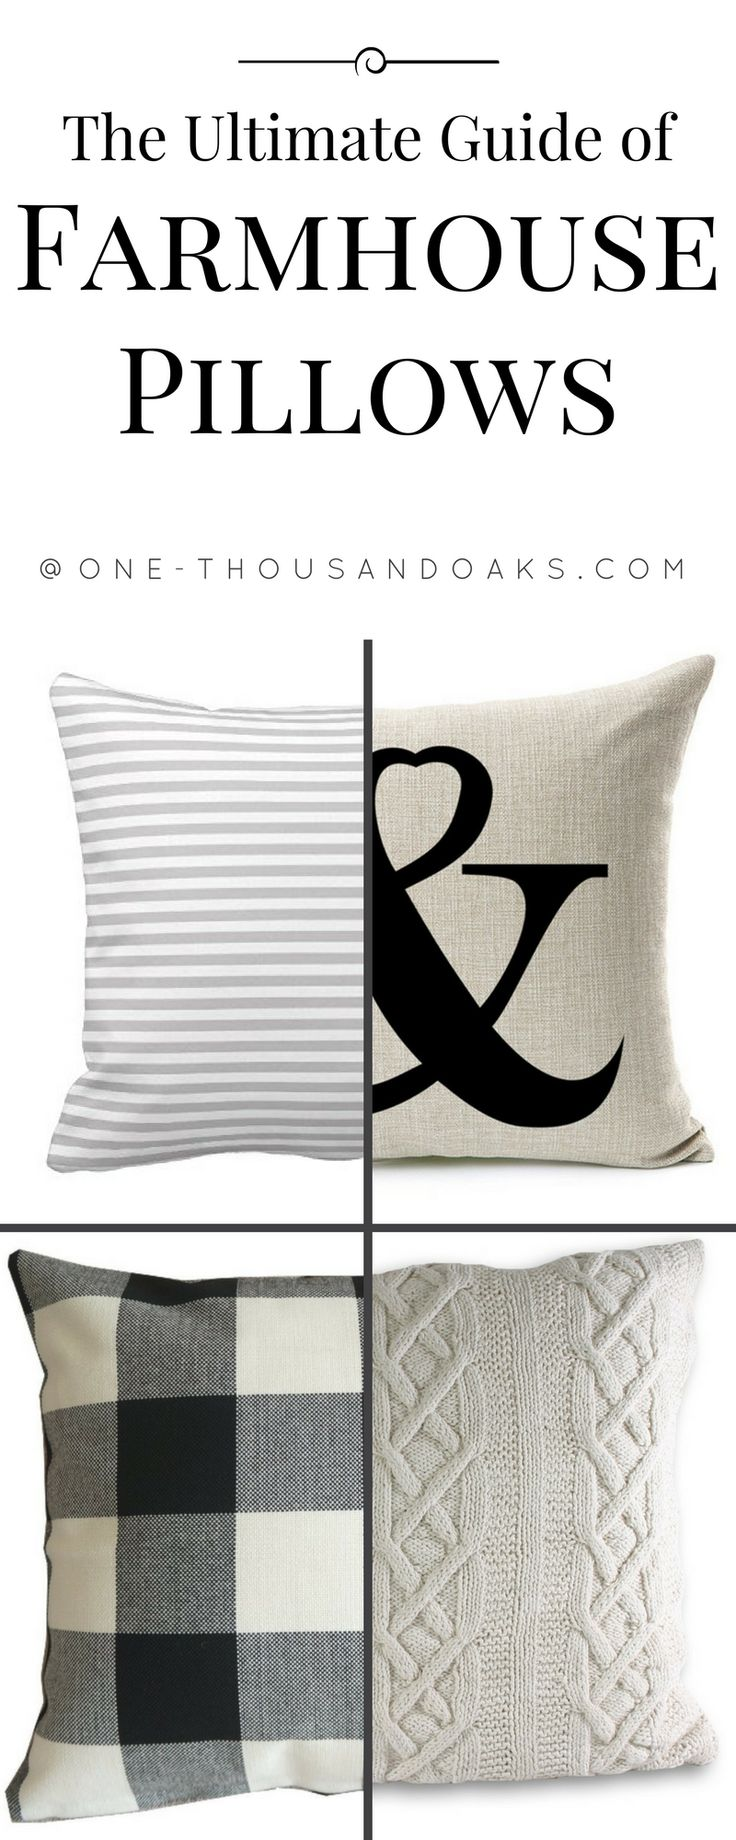 I love this Ultimate guide of farmhouse pillows on Amazon by One Thousand Oaks. So many adorable pillows!  |farmhouse | throw pillows | pillows